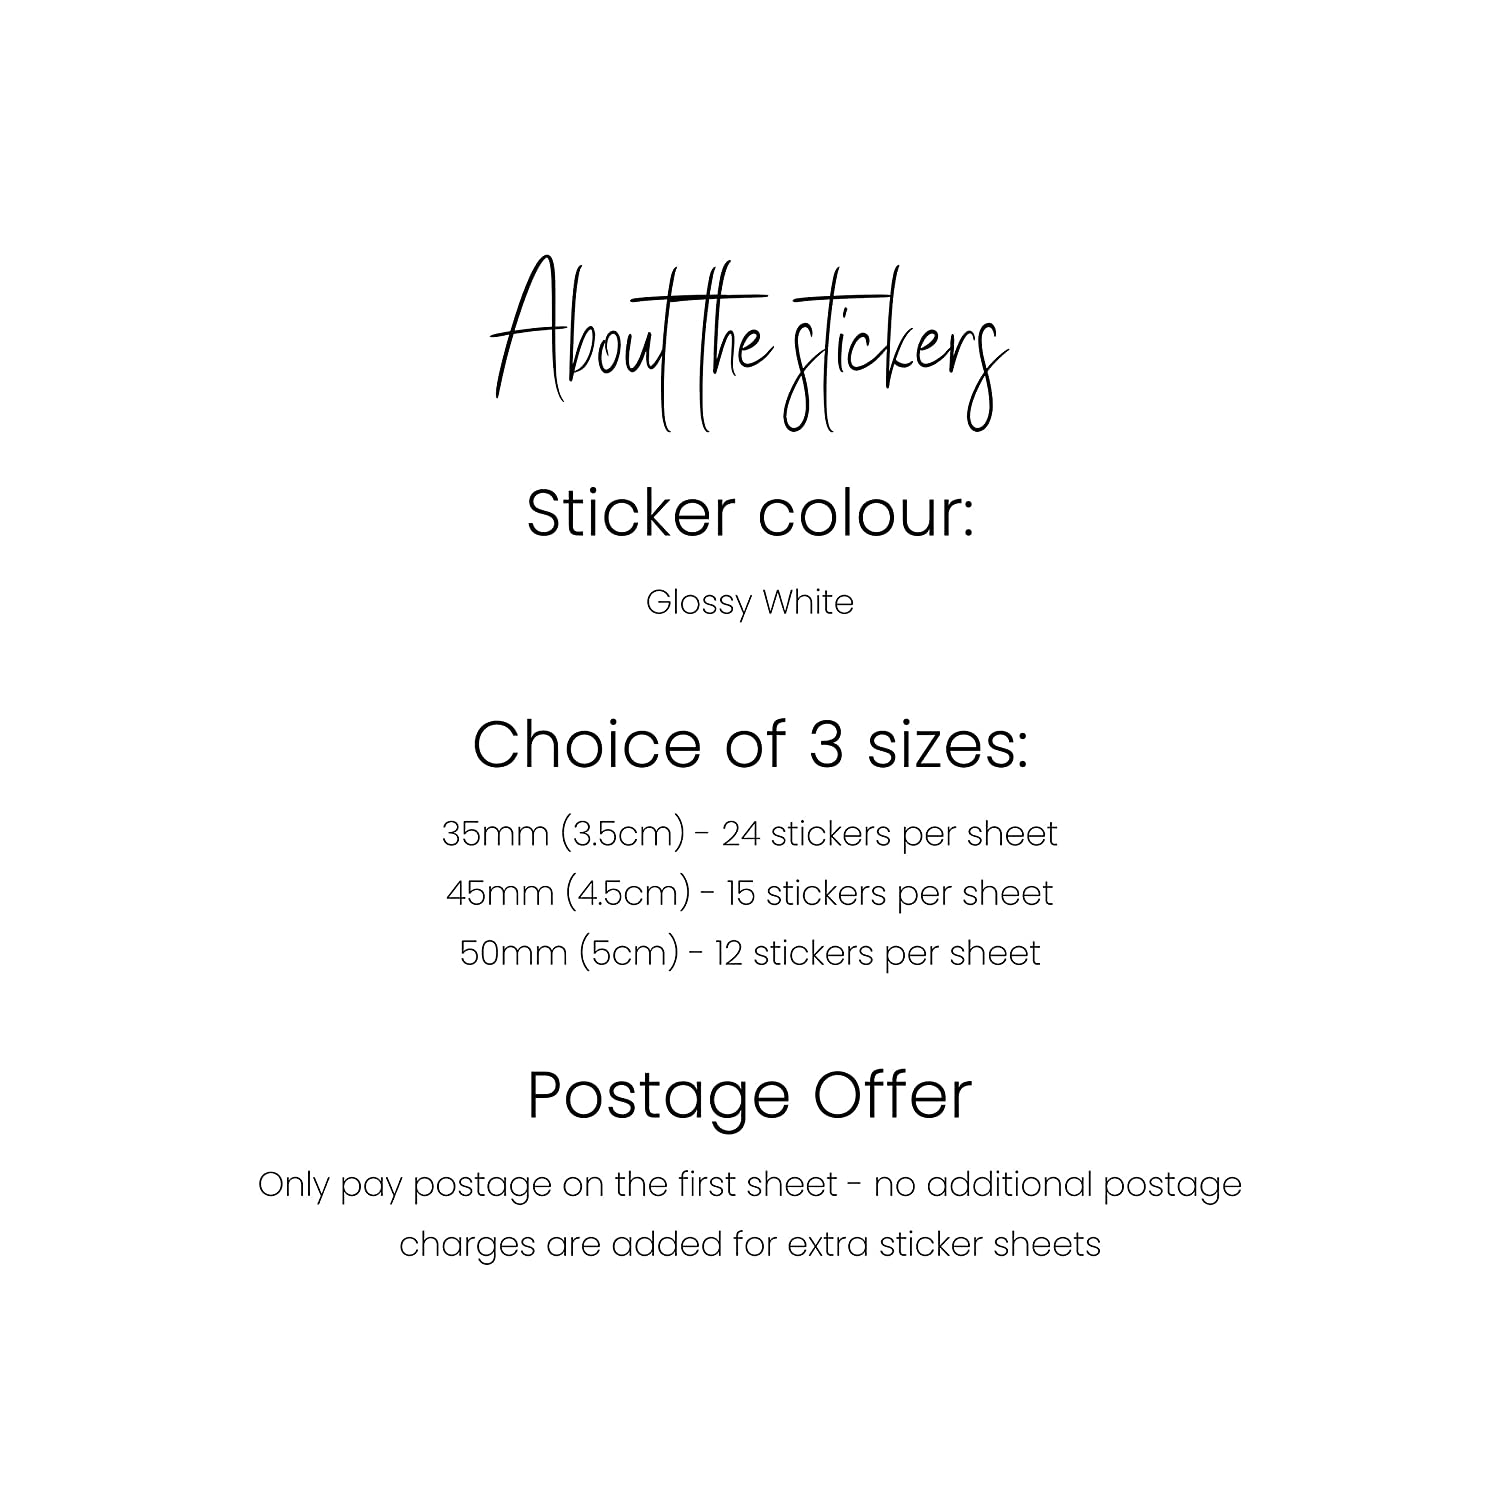 35mm Floral Watercolour Throw Me Custom Made Wedding Stickers Confetti Stickers 45mm or 50mm Glossy White Stickers